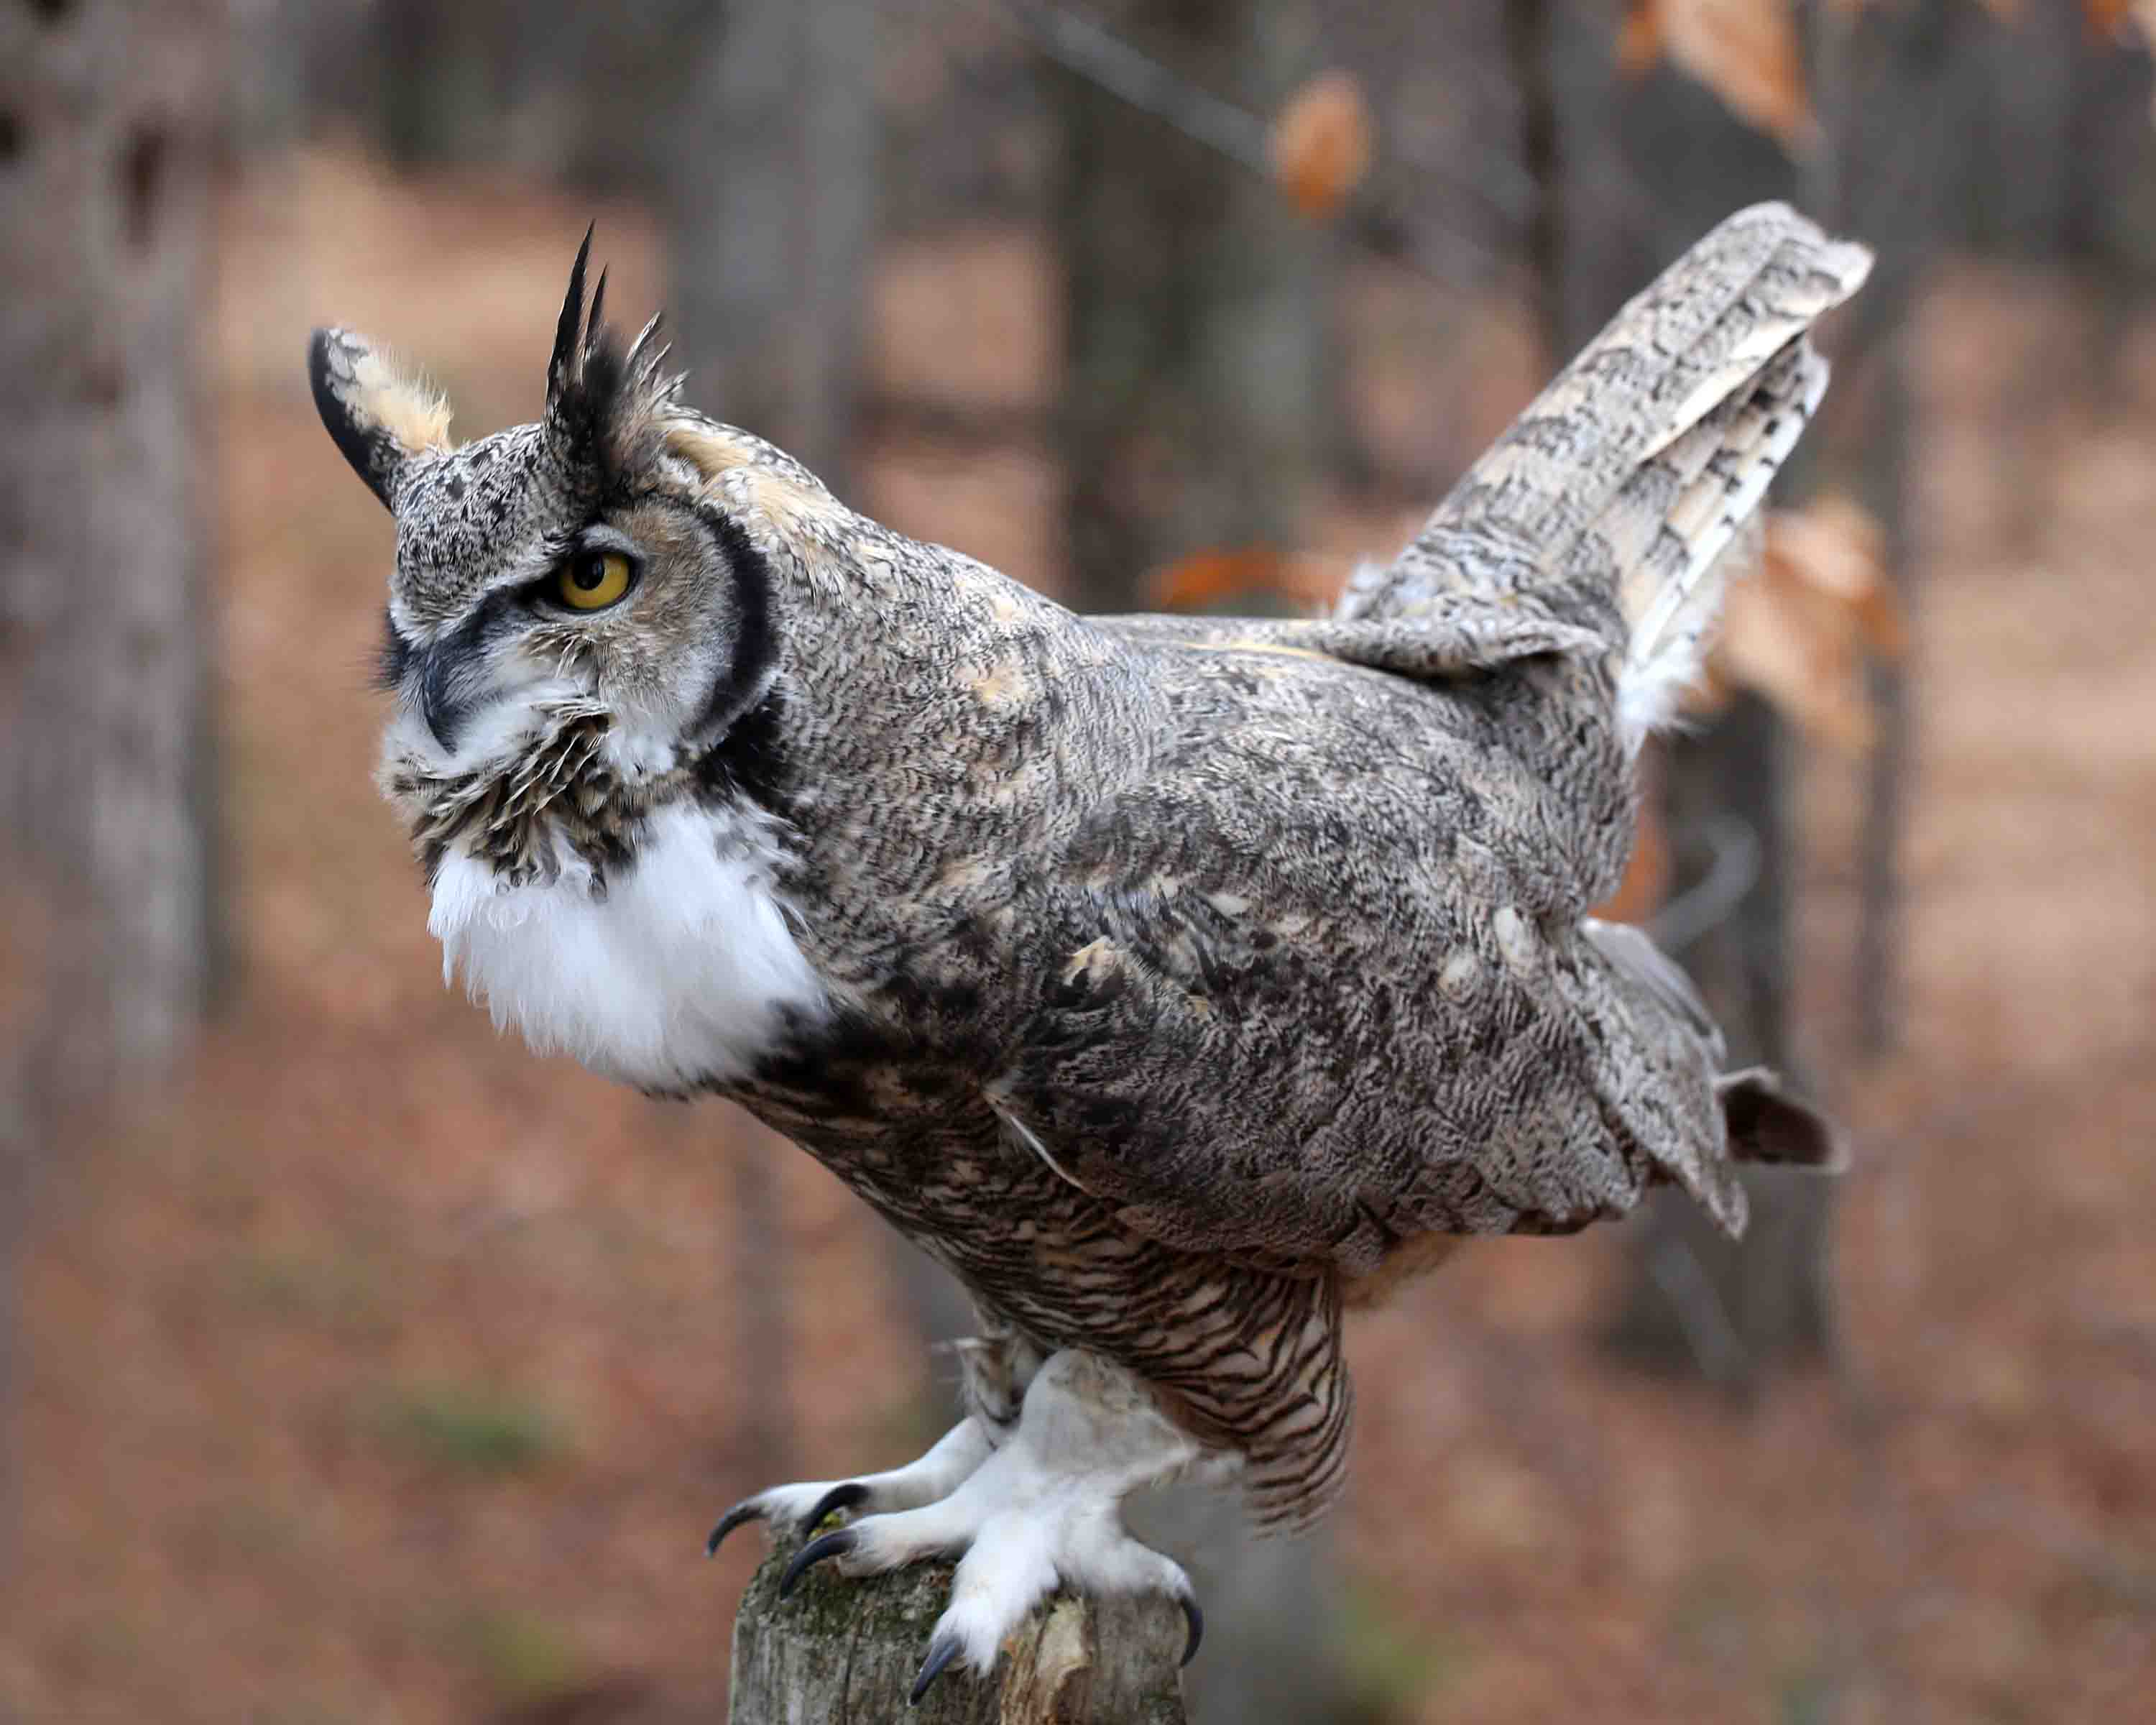 1-19-16  great horned owl calling 289